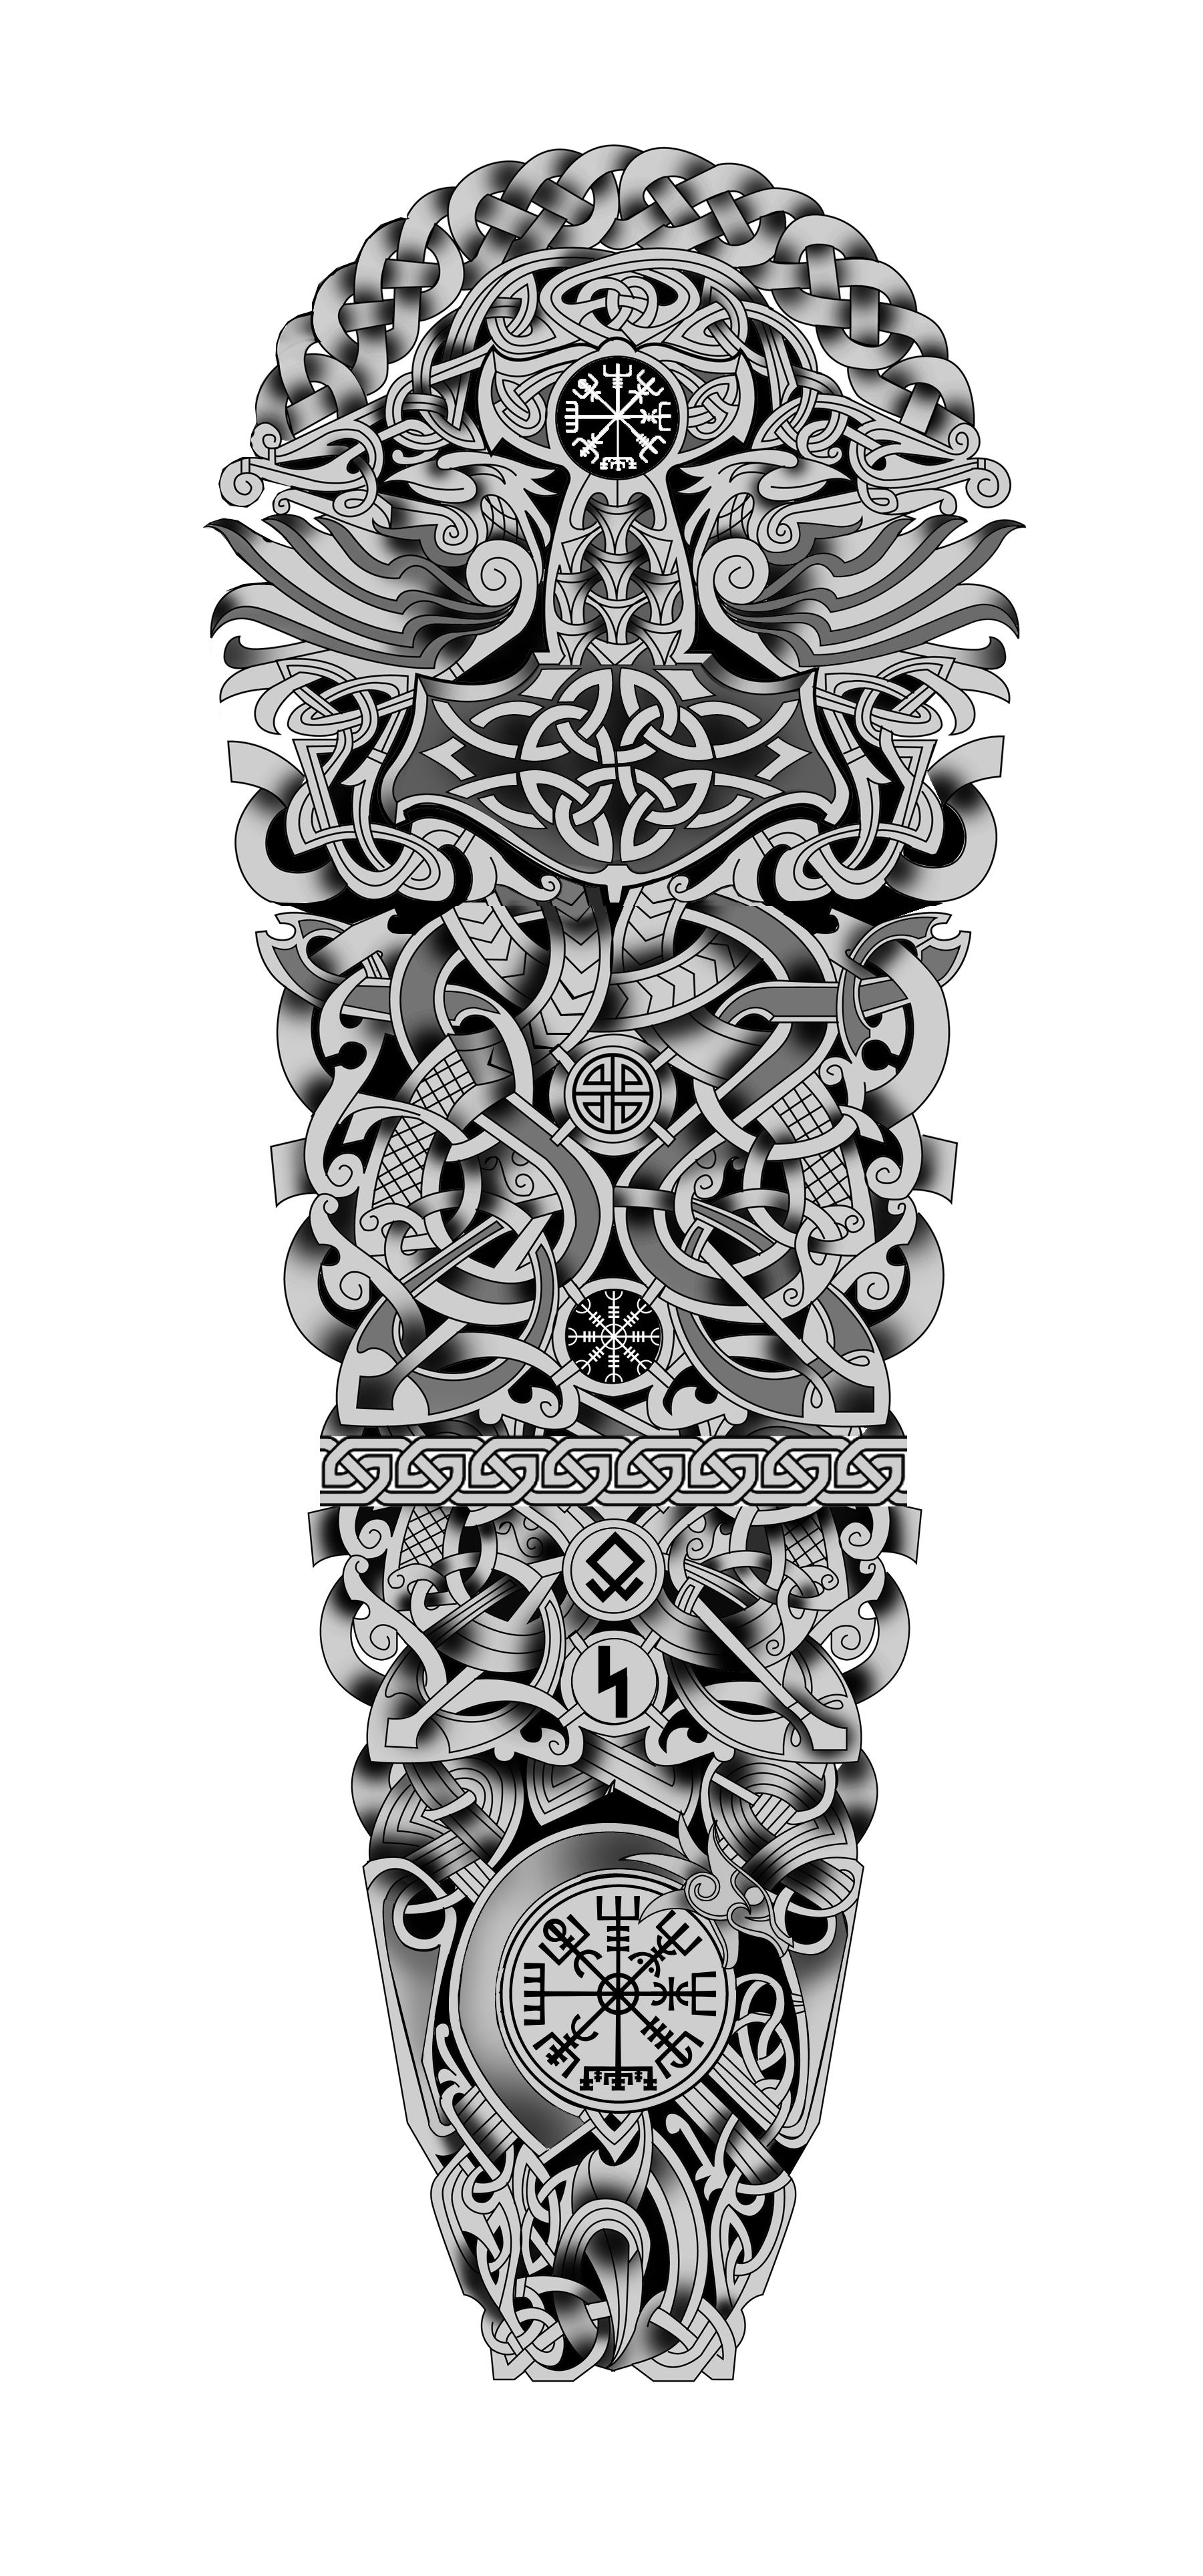 100 Nordic Viking Celtic Full Sleeve Tattoo Design Designer Andrija Protic Full Sleeve Tattoo Design Celtic Sleeve Tattoos Tattoo Sleeve Designs